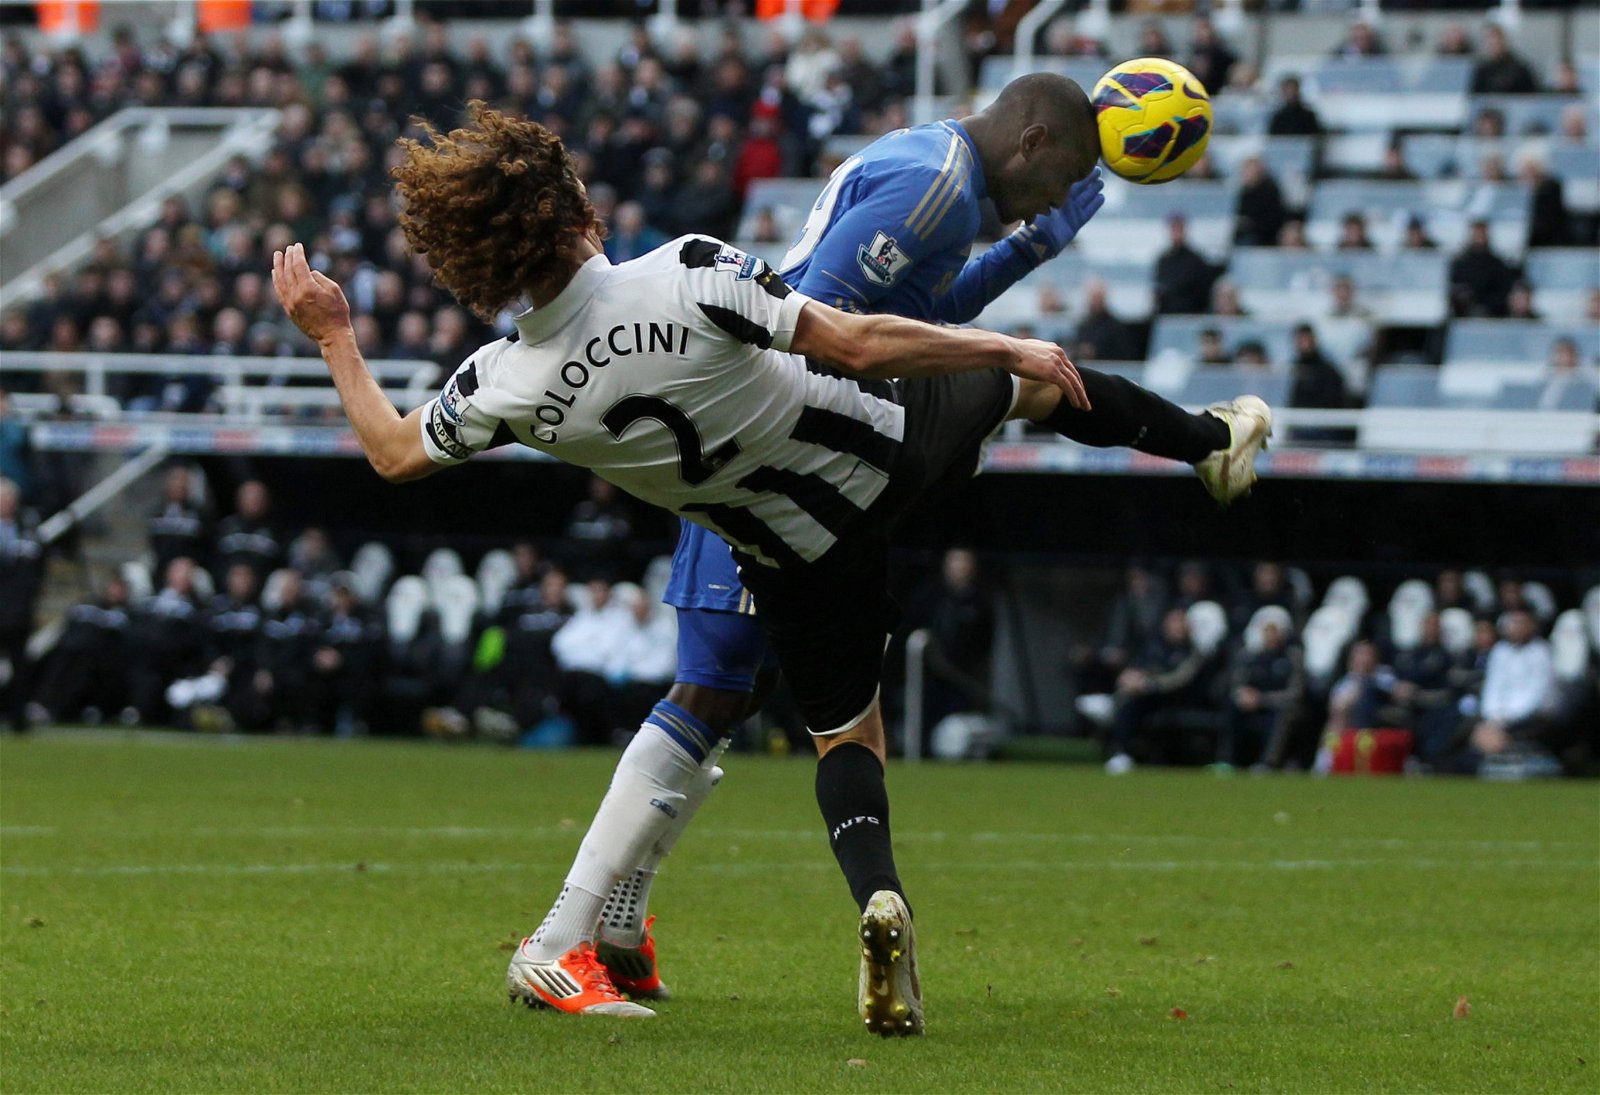 Demba Ba is kicked in the face by Fabricio Coloccini